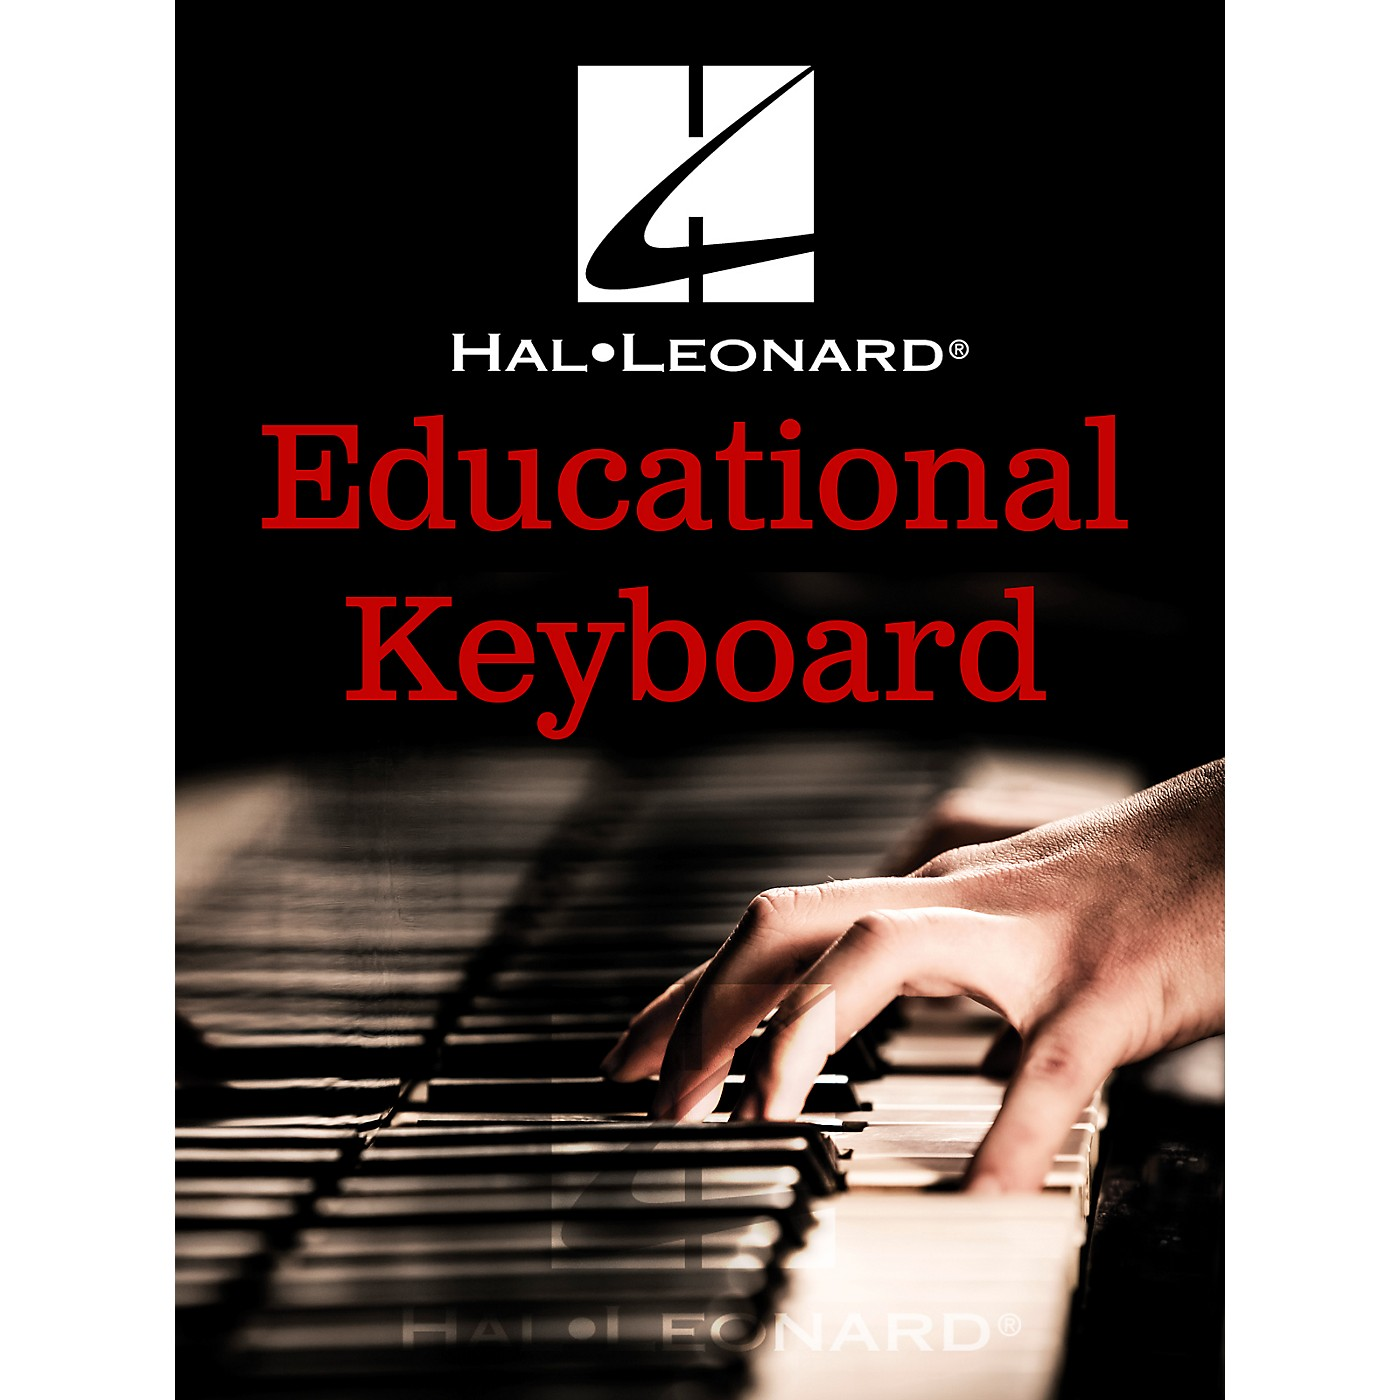 Hal Leonard The Best of The Beatles - Vol. 1 Horizons Piano Education Series Performed by The Beatles thumbnail